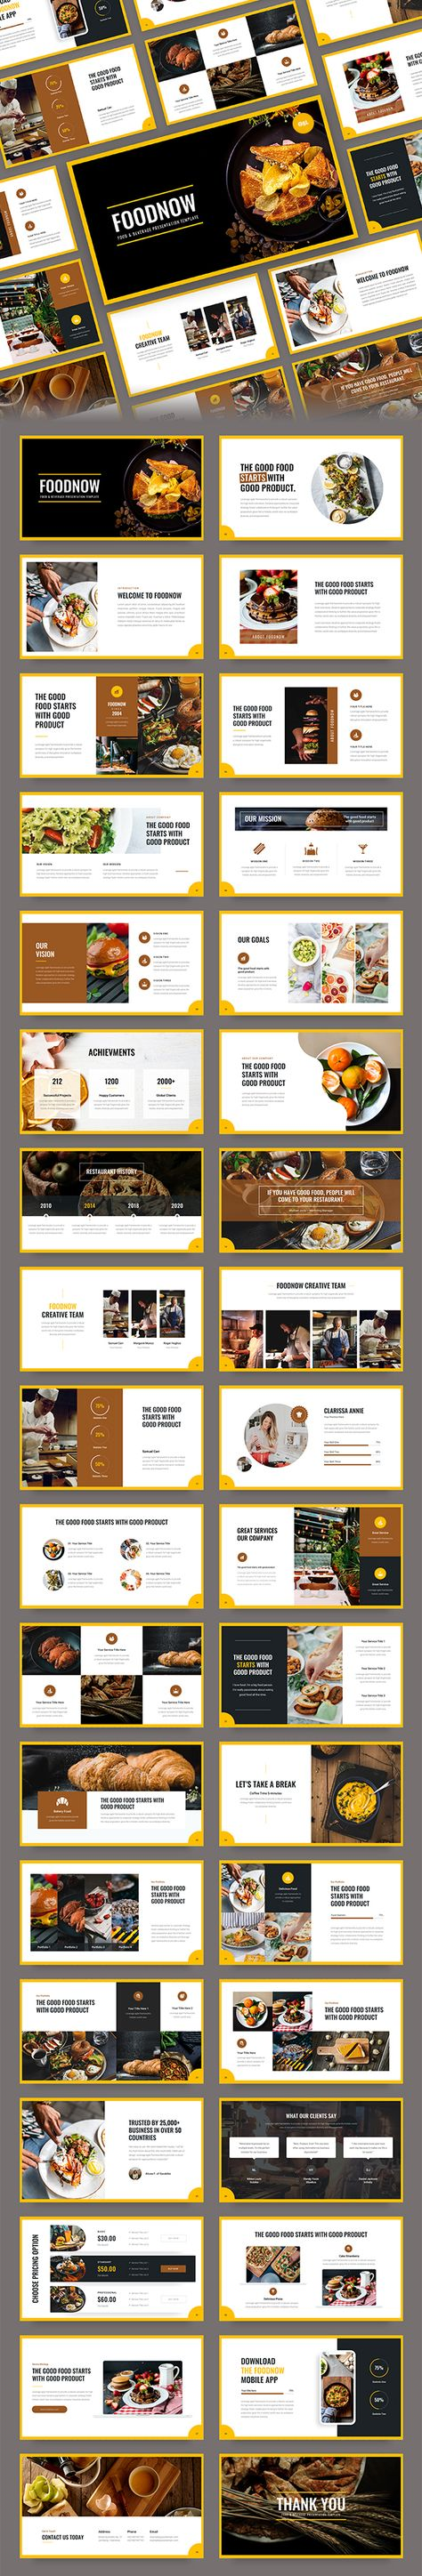 Foodnow - Food Google Slides Presentation Template